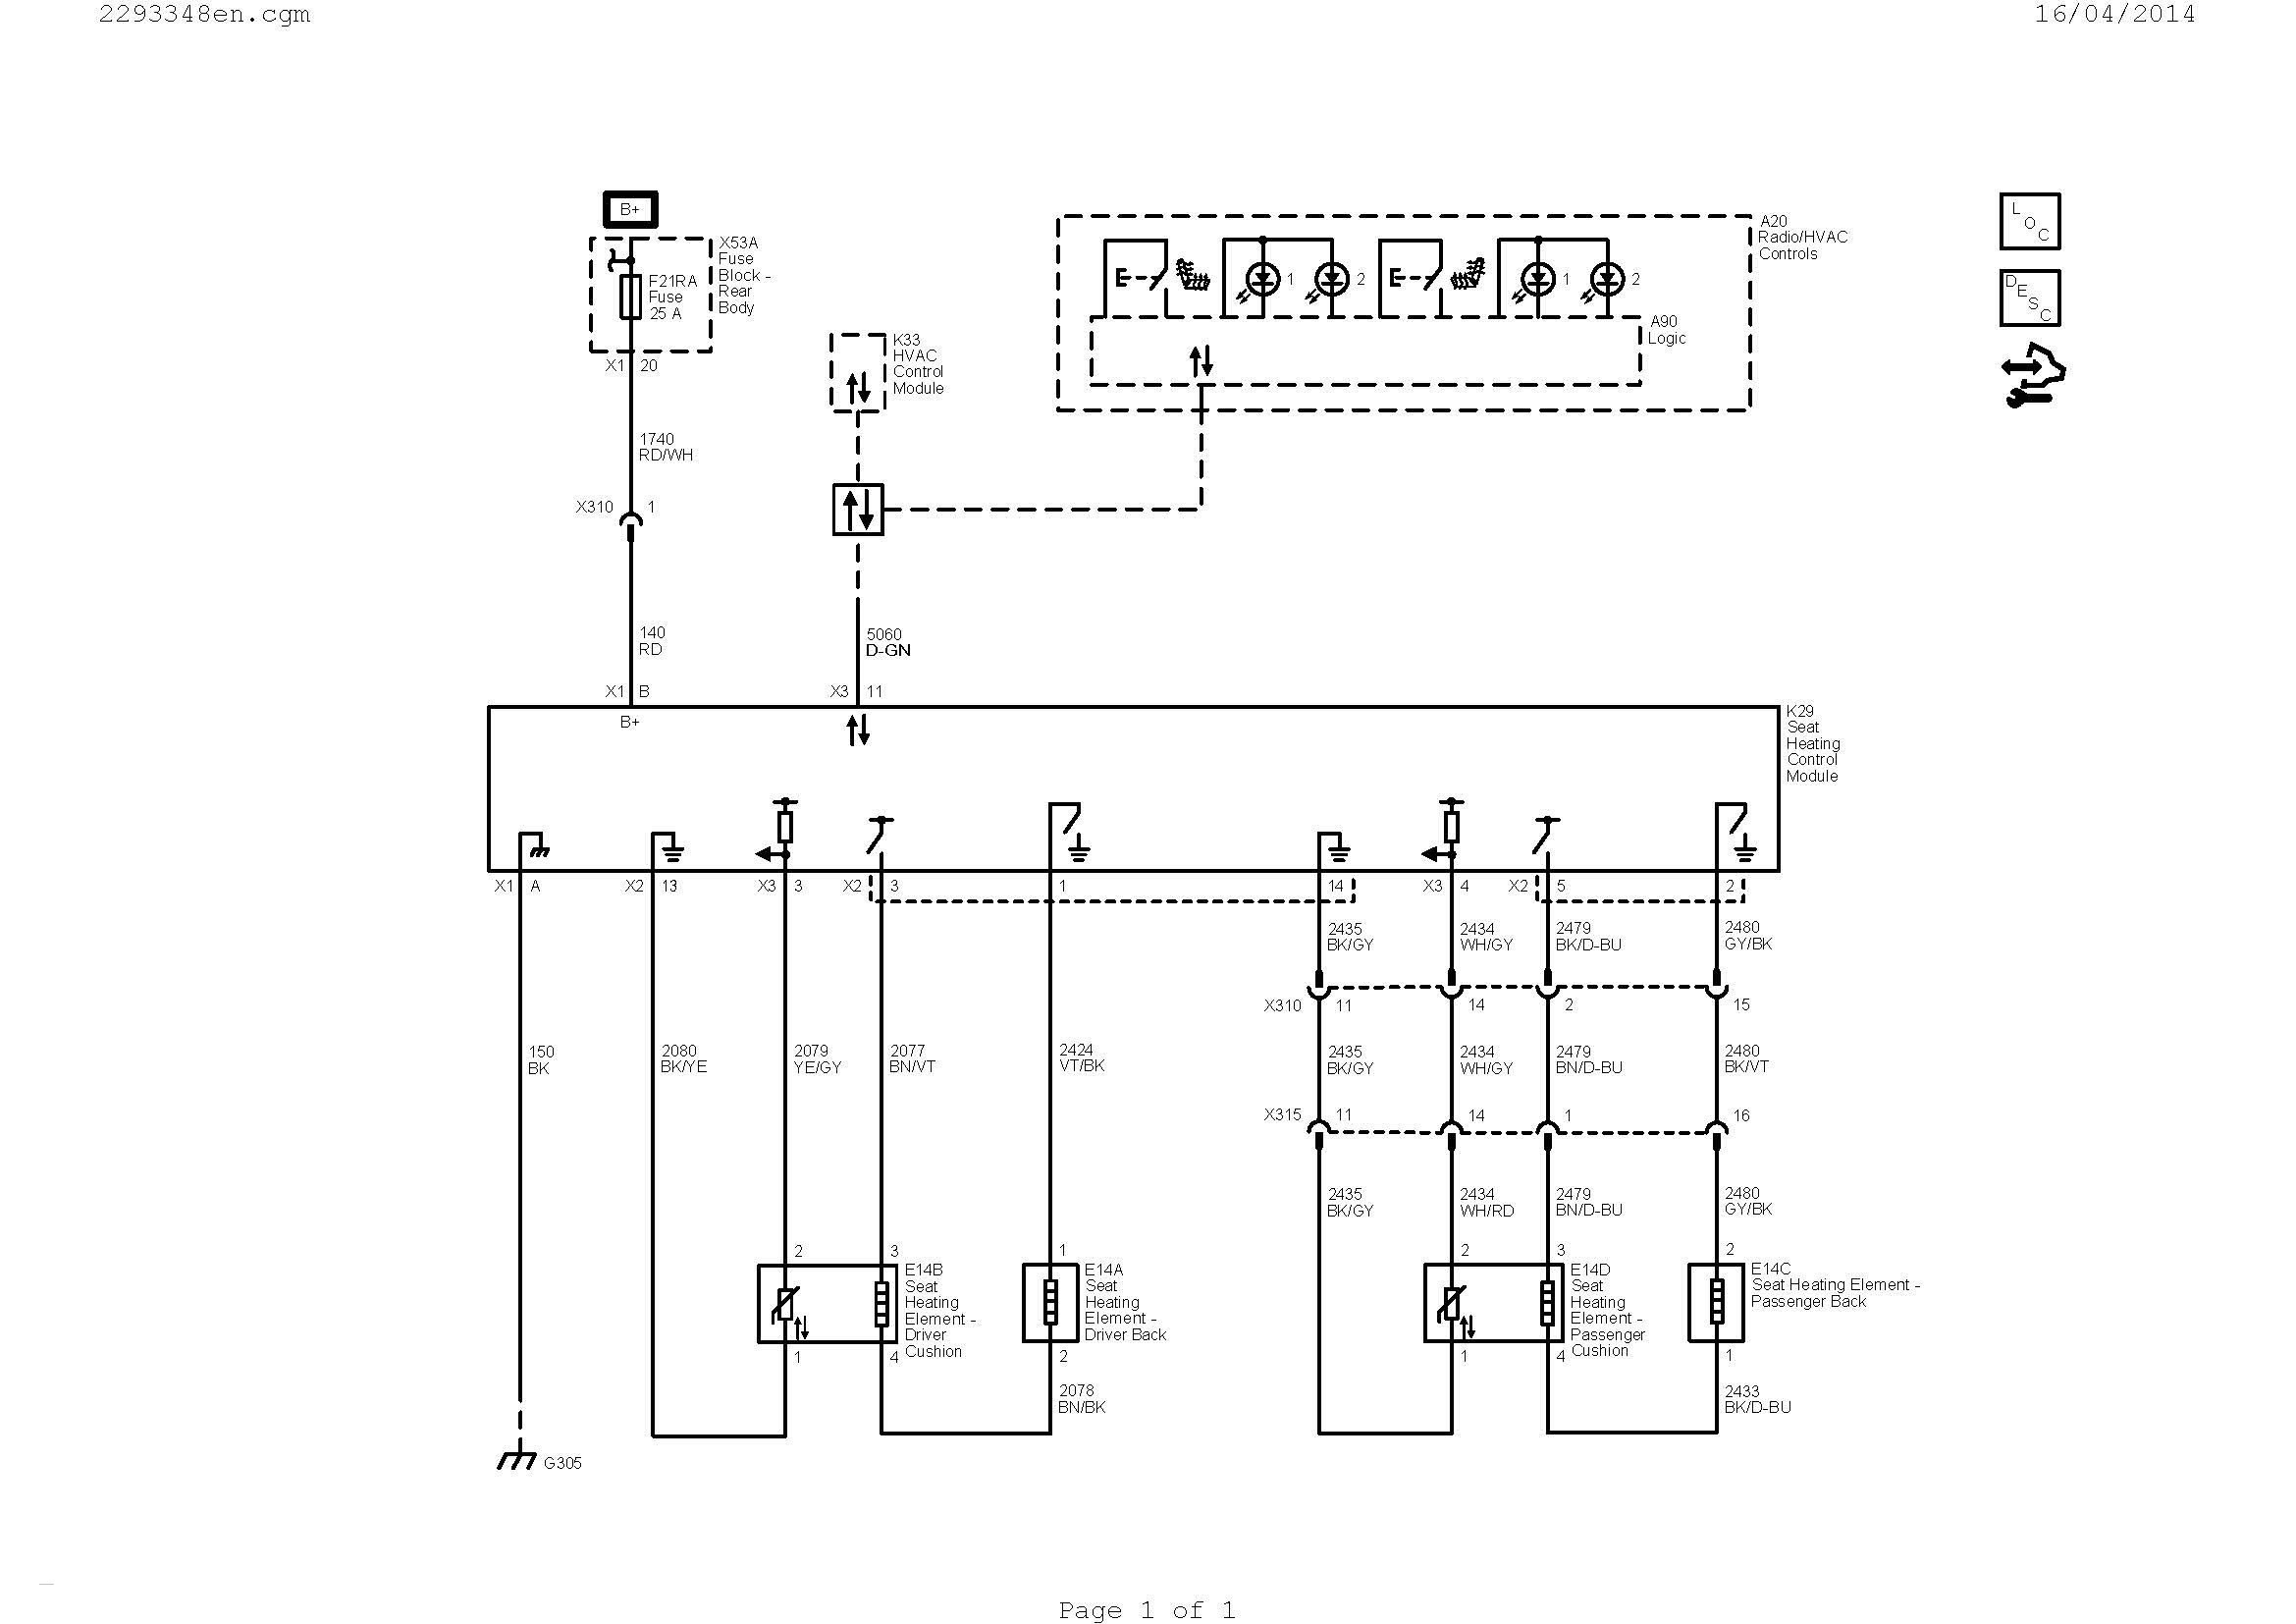 32 Wire Diagram Free Diagram Template Wiring Diagram for A Cat5 Cable New Cat5e Wire